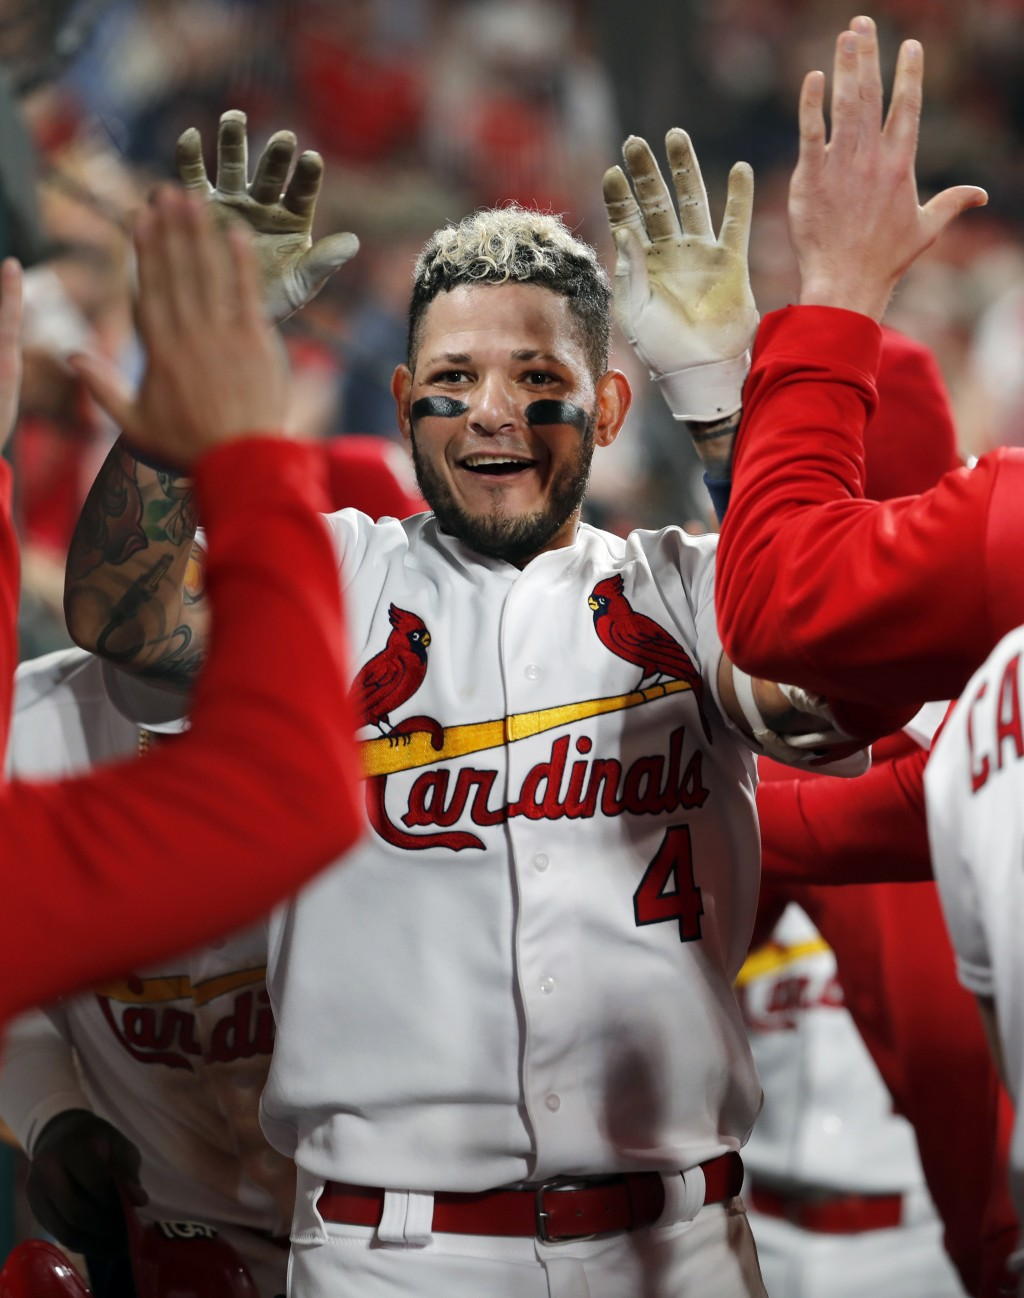 St. Louis Cardinals' Yadier Molina is congratulated by teammates in the dugout after hitting a two-run home run during the sixth inning of the team's